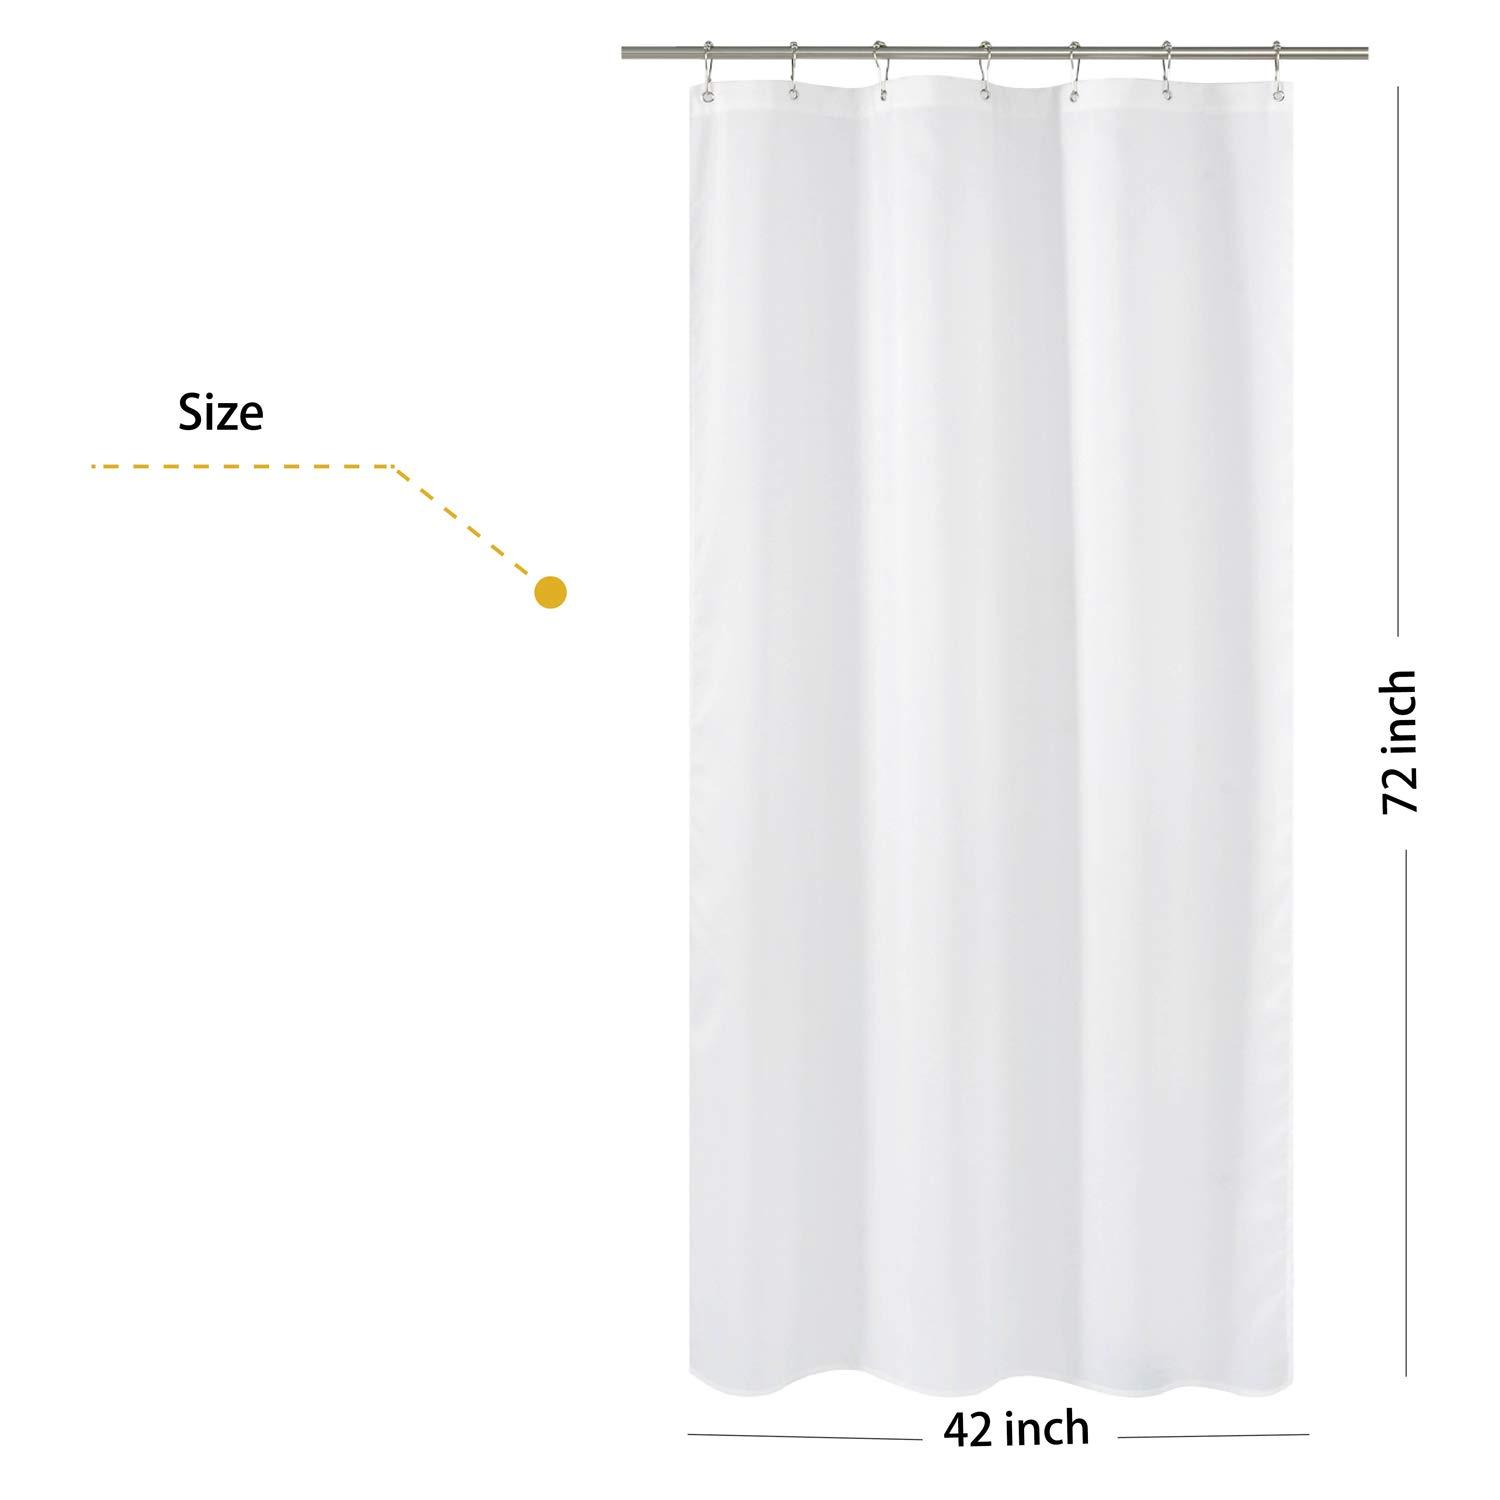 n y home fabric shower curtain liner stall size 42 width by 72 length inches hotel quality washable white bathroom curtains with grommets 42x72